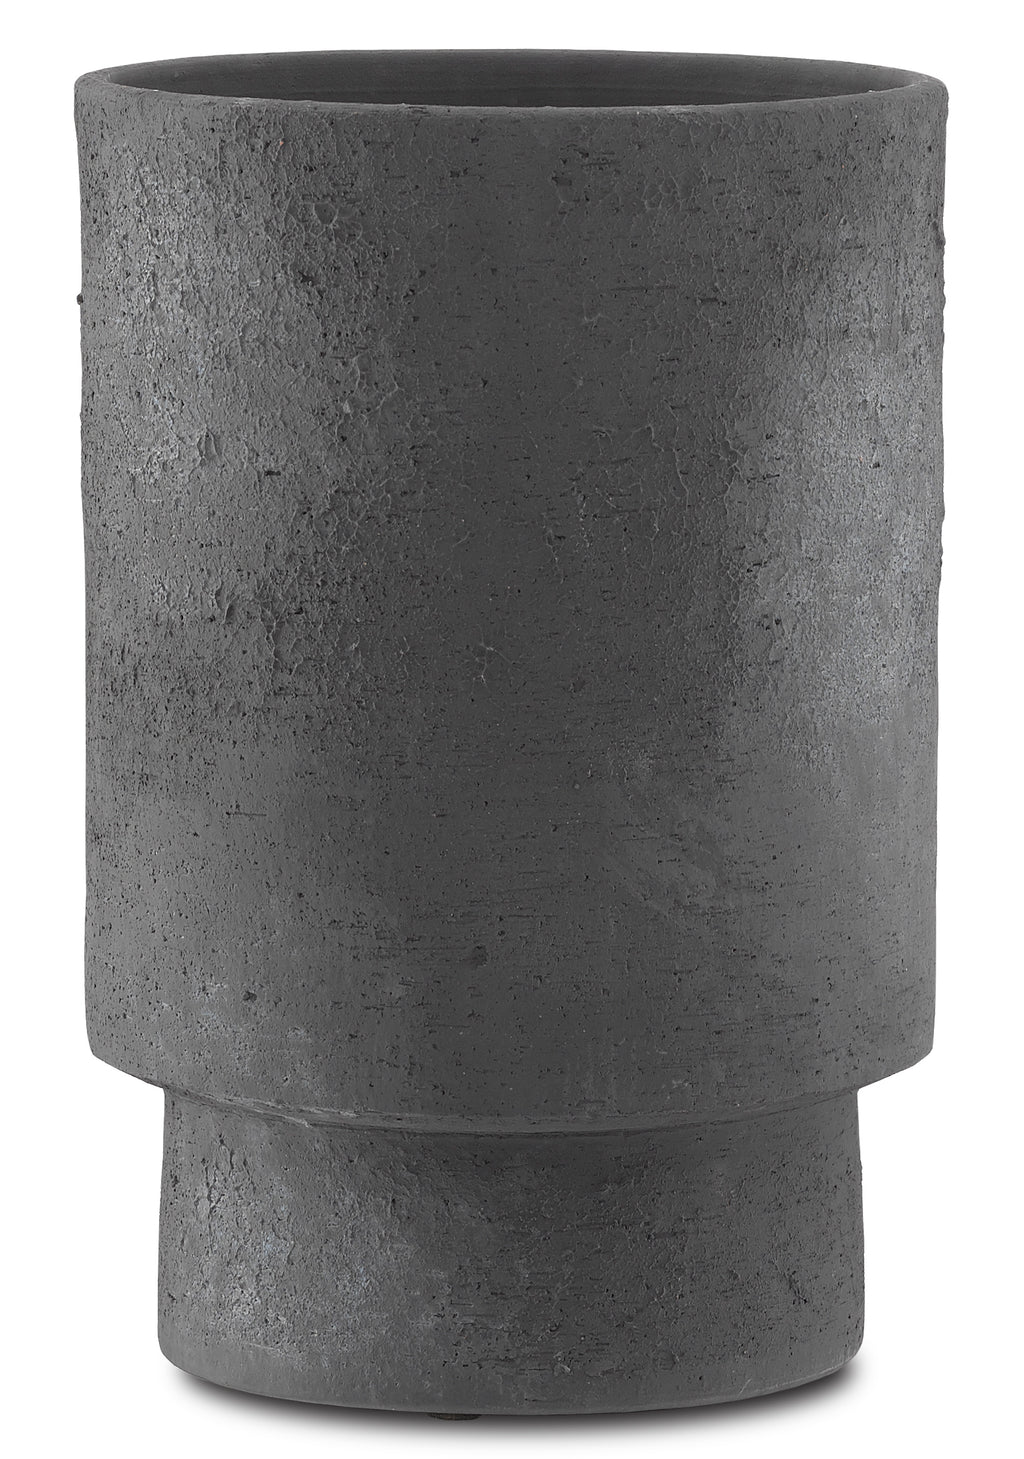 Tambora Black Vase (Large)